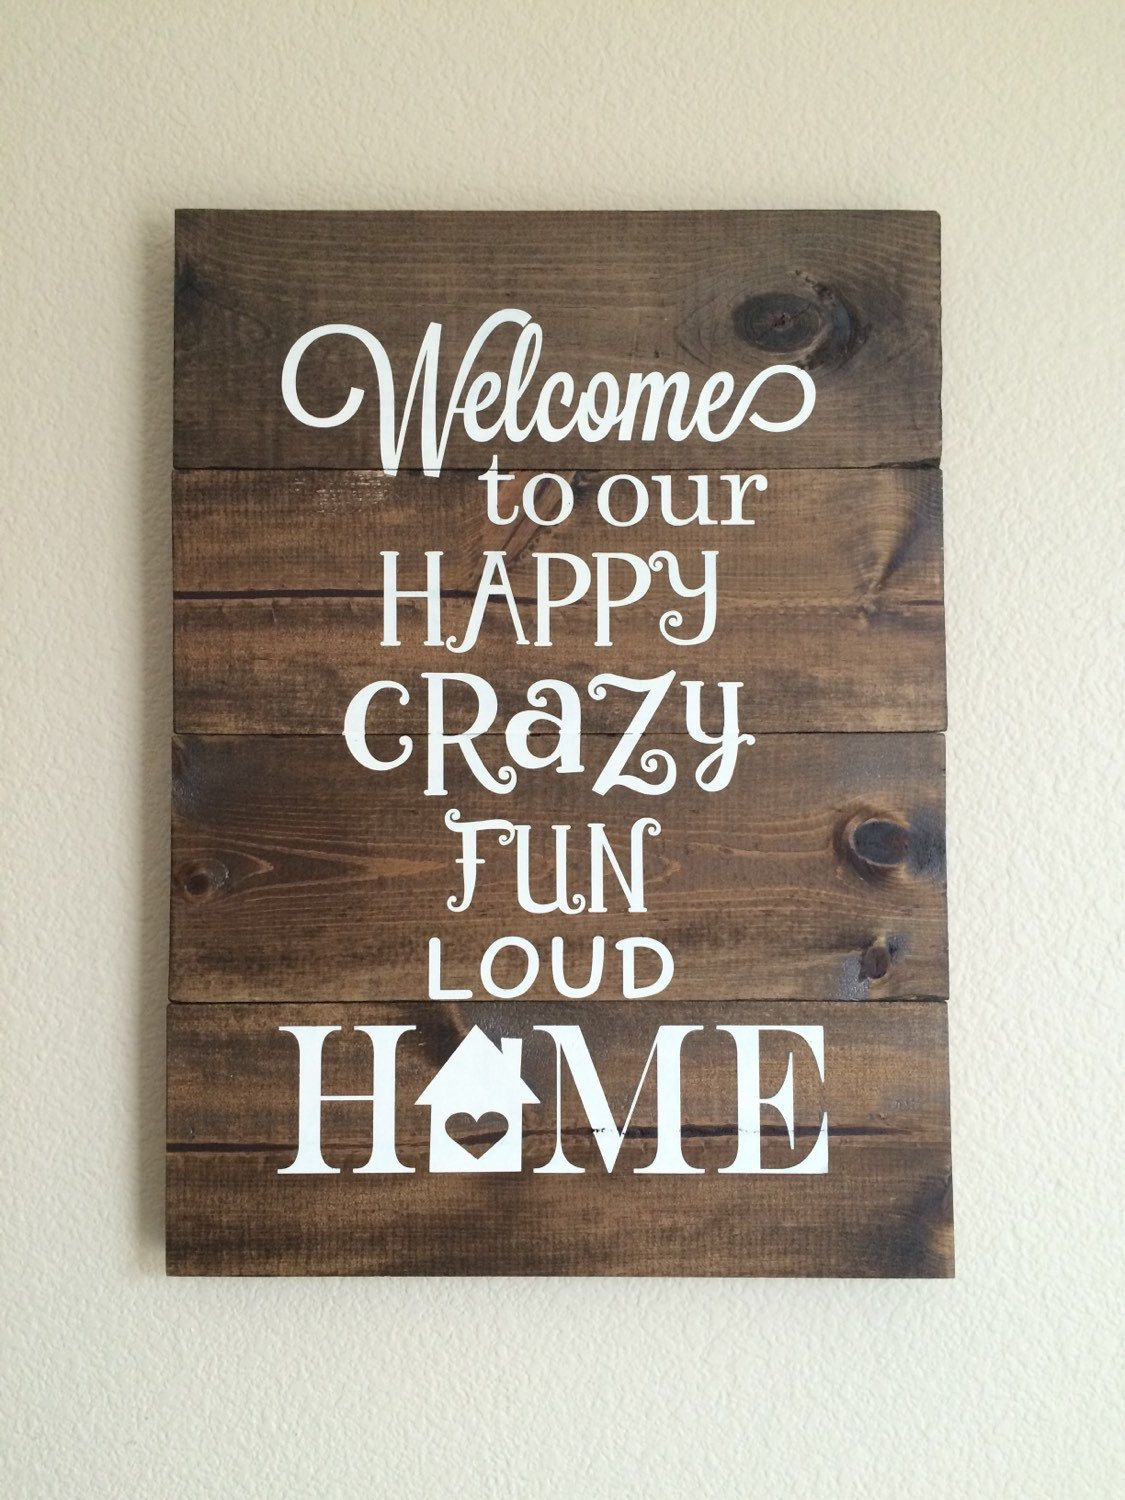 Welcome Sign,Wood Sign,Pallet Sign,Welcome To Our Home,Hand Painted,Home  Decor,Wall Decor,Rustic,Home Sign,Welcome By DodsonDecor On Etsy ...